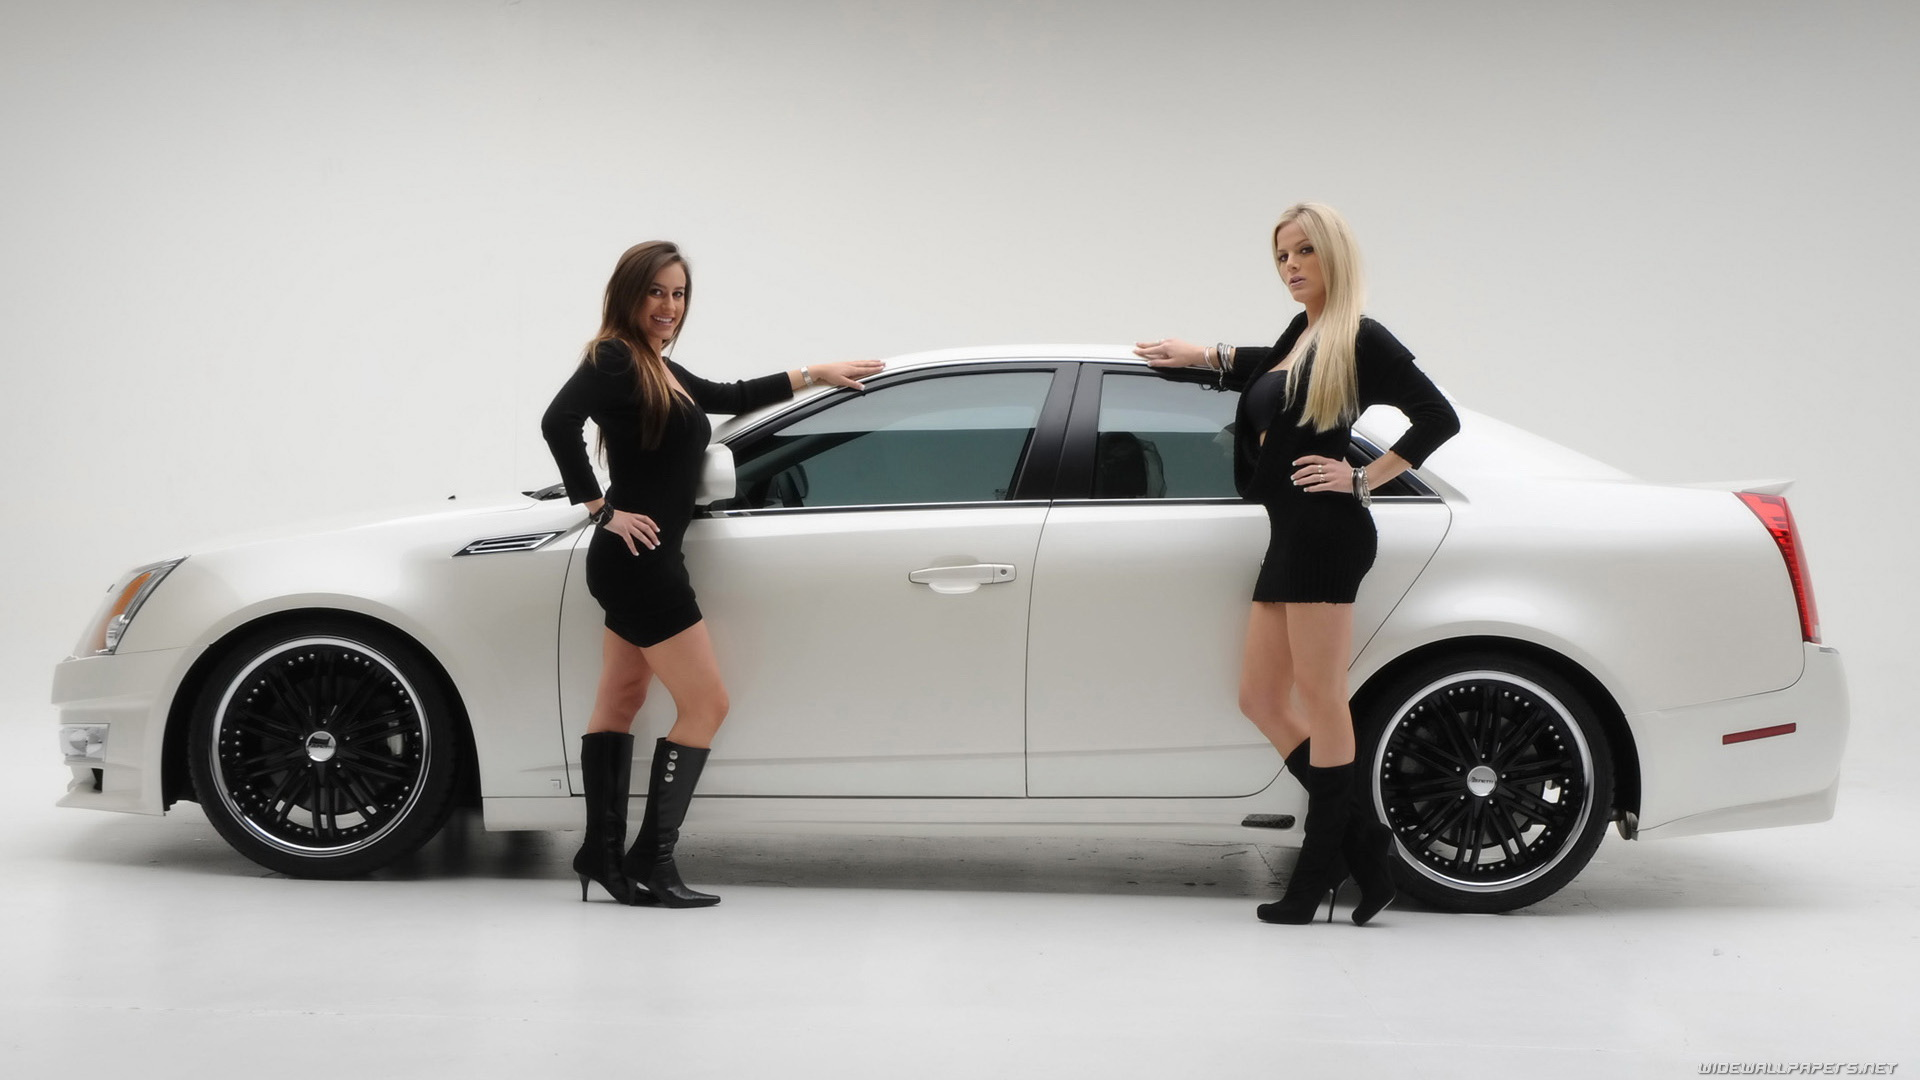 Cars Girls Wallpapers Girls And Cars 1920X1080 1920 X 1080 Cars And 1920x1080